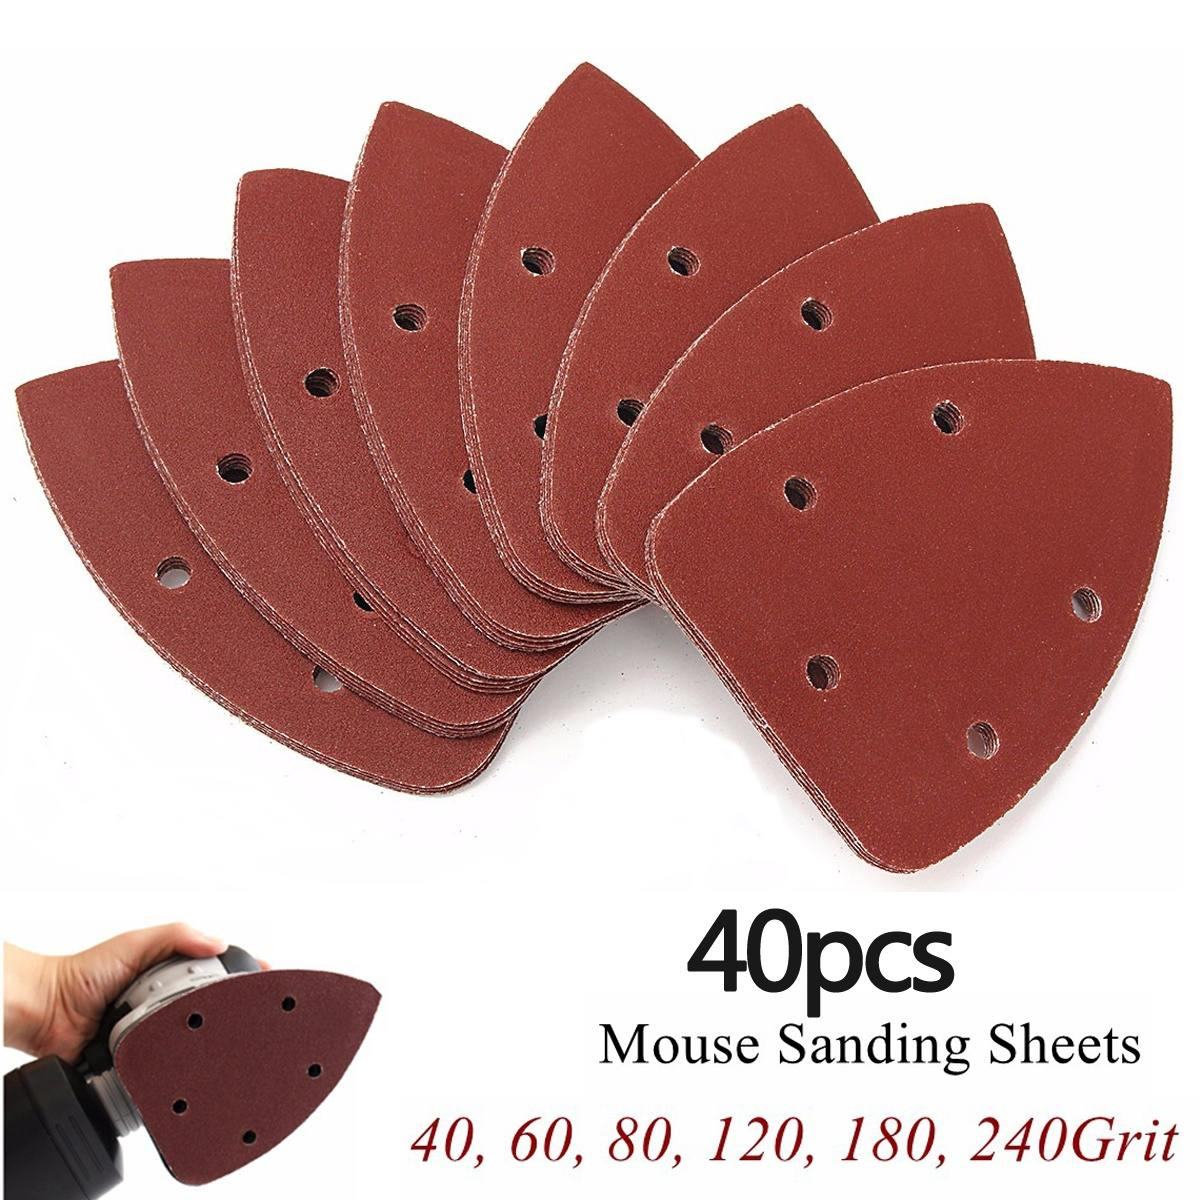 40pcs 140mmx90mm 40-240grit Mouse Sanding Sheets Paper Grinding Pad Polishing Disc Fit Black & Decker P Alm Sander